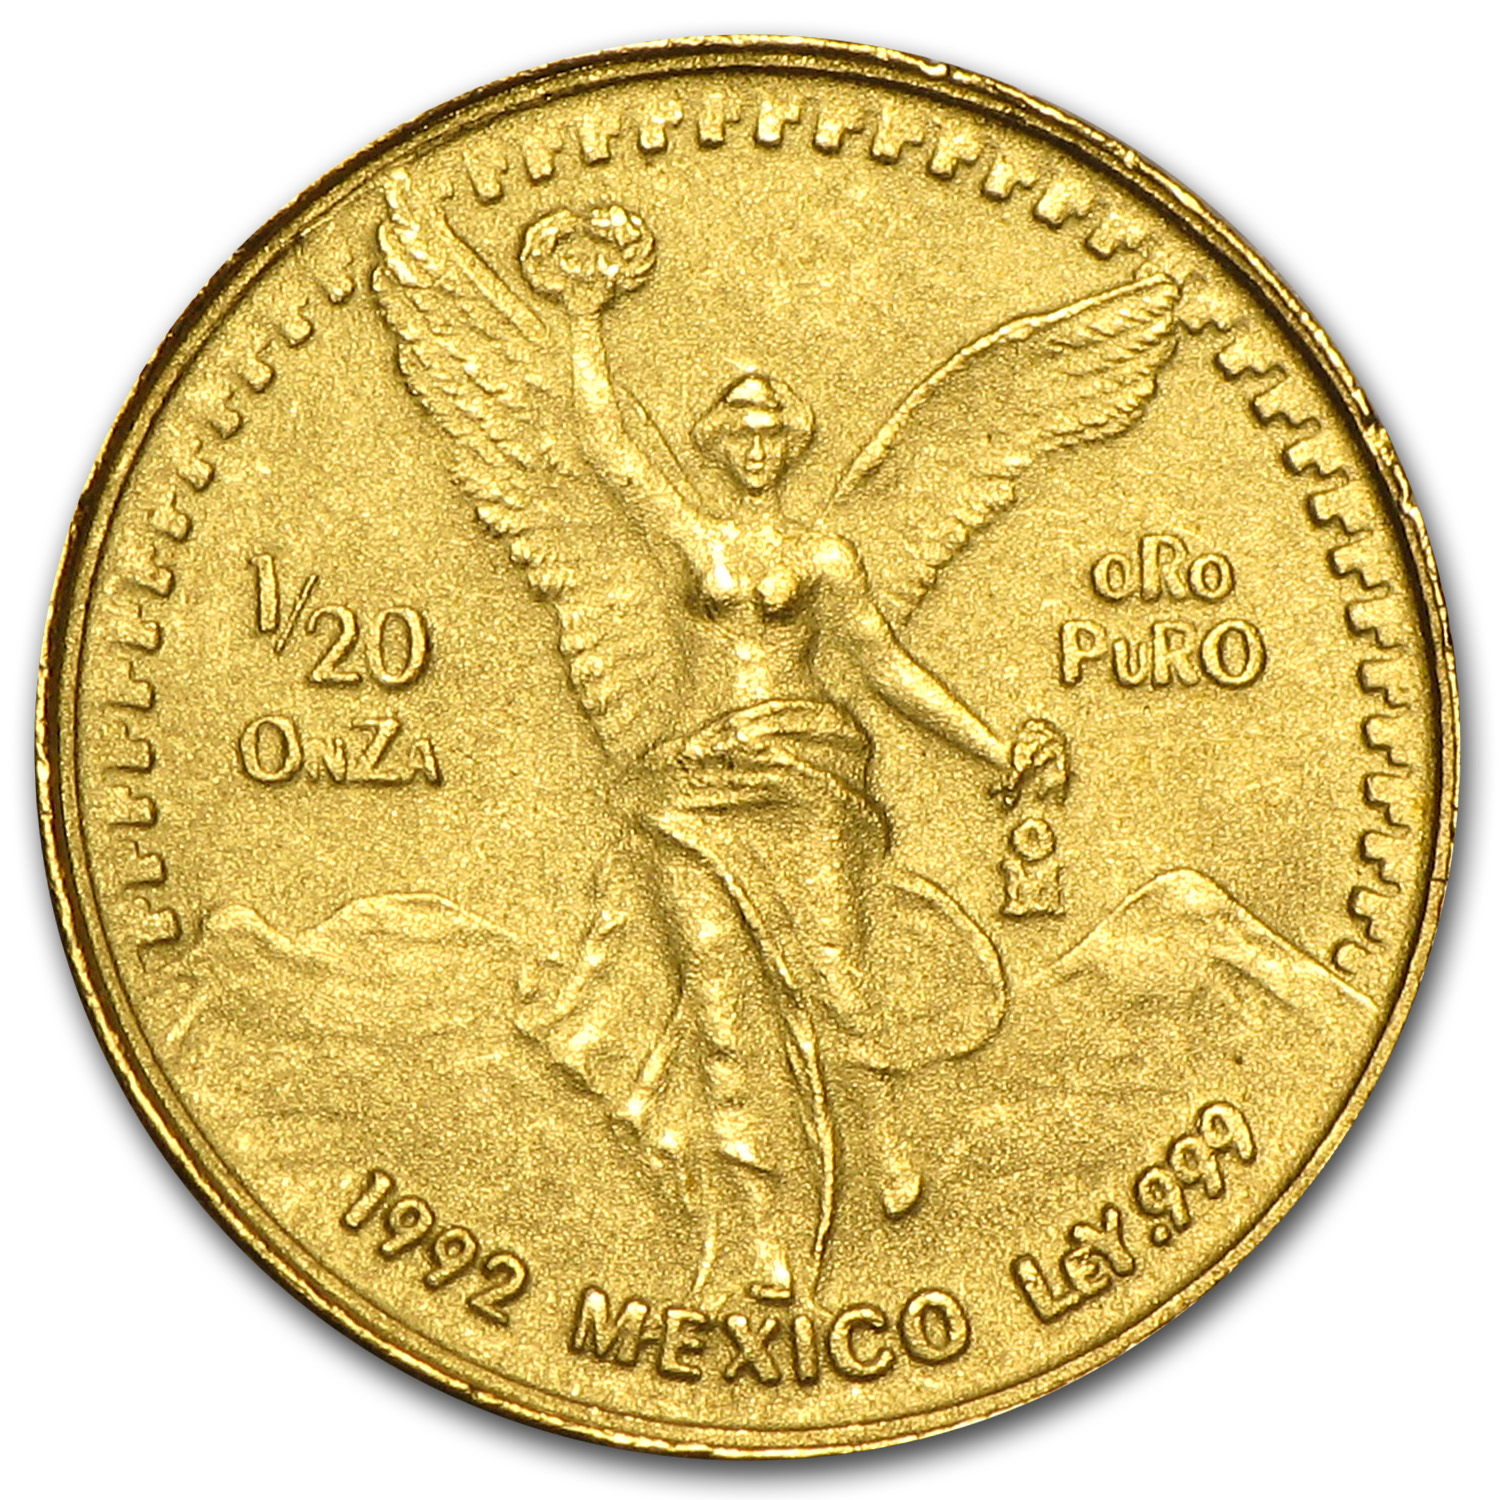 1992 Mexico 1/20 oz Gold Libertad BU